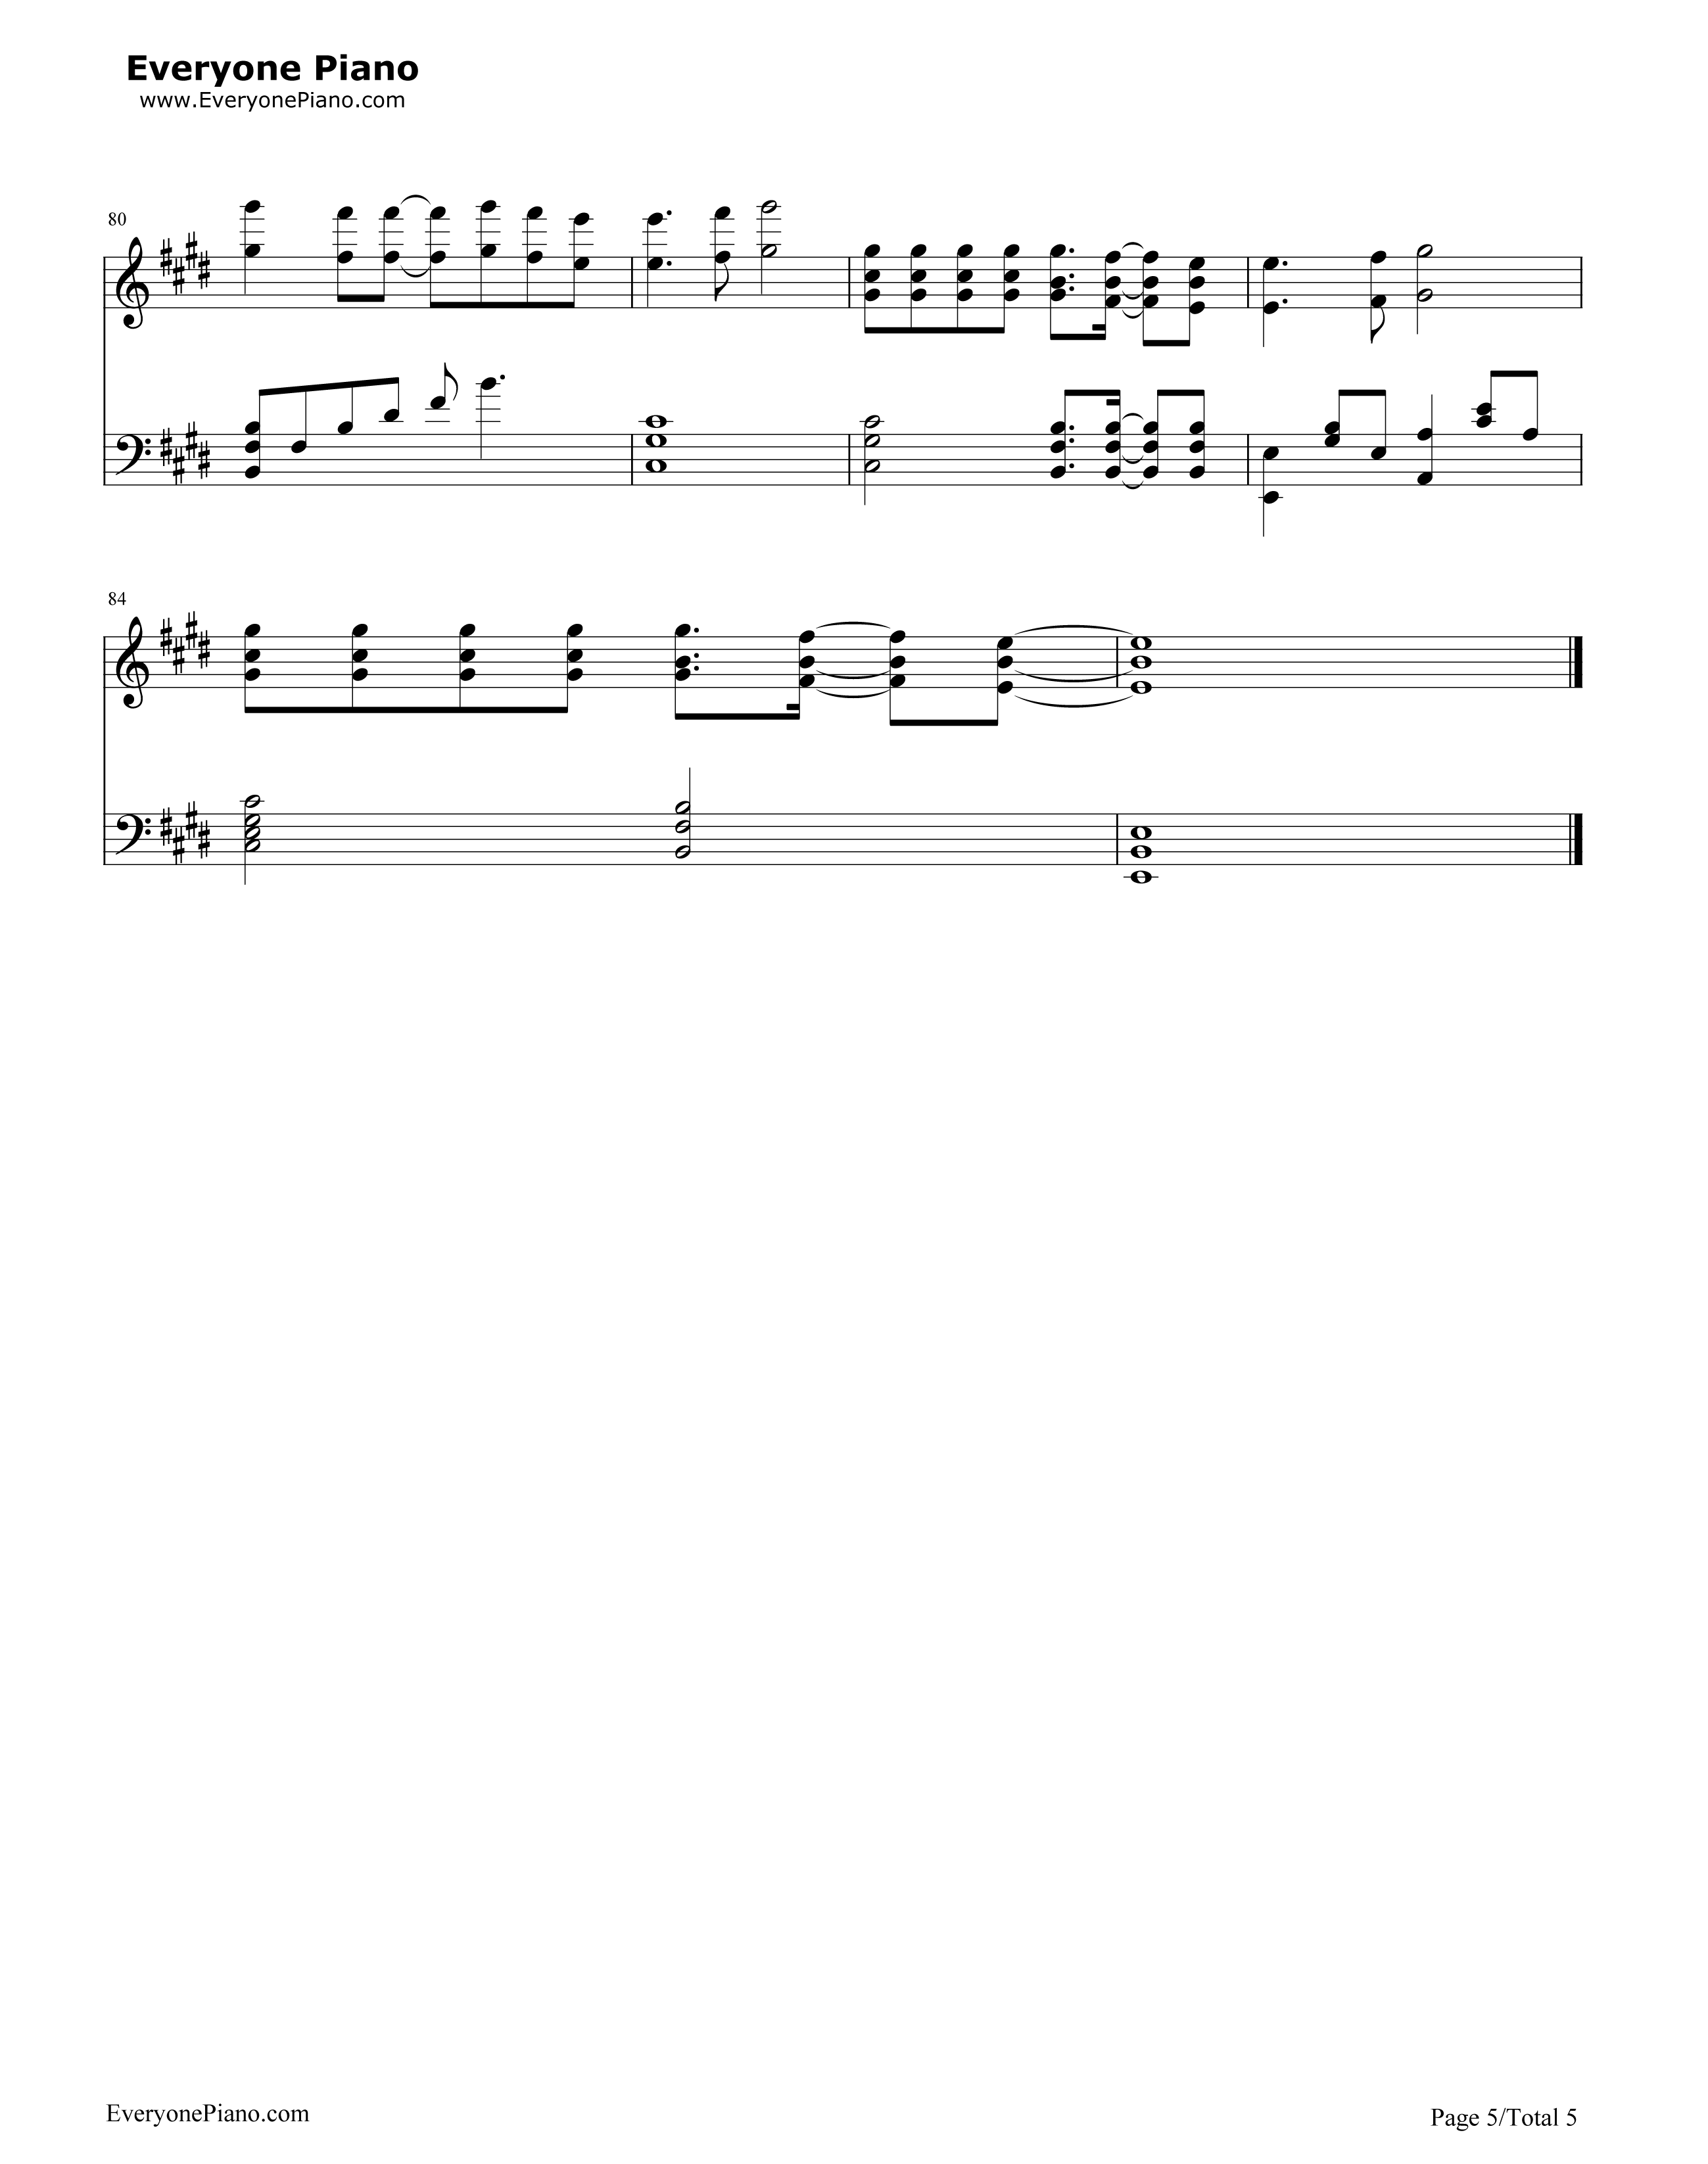 What Makes You Beautiful-One Direction Stave Preview 5-Free Piano Sheet Music u0026 Piano Chords